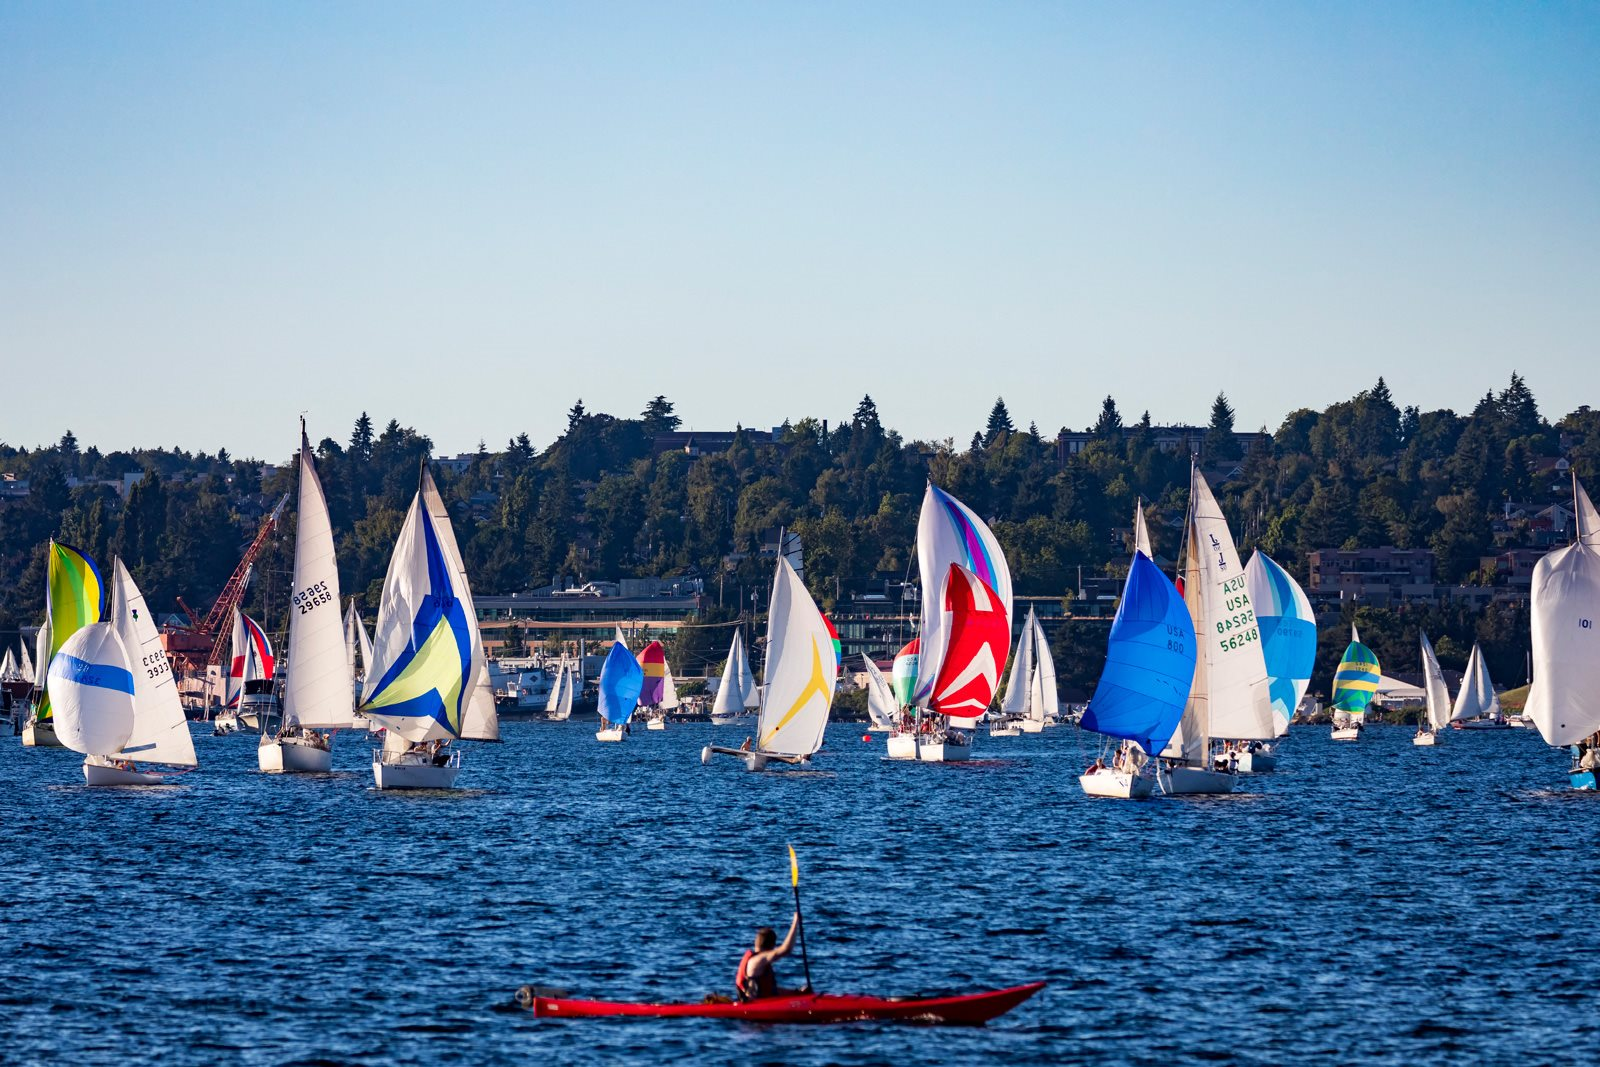 Sailing in South Lake Union near Stratus, Washington, 98121